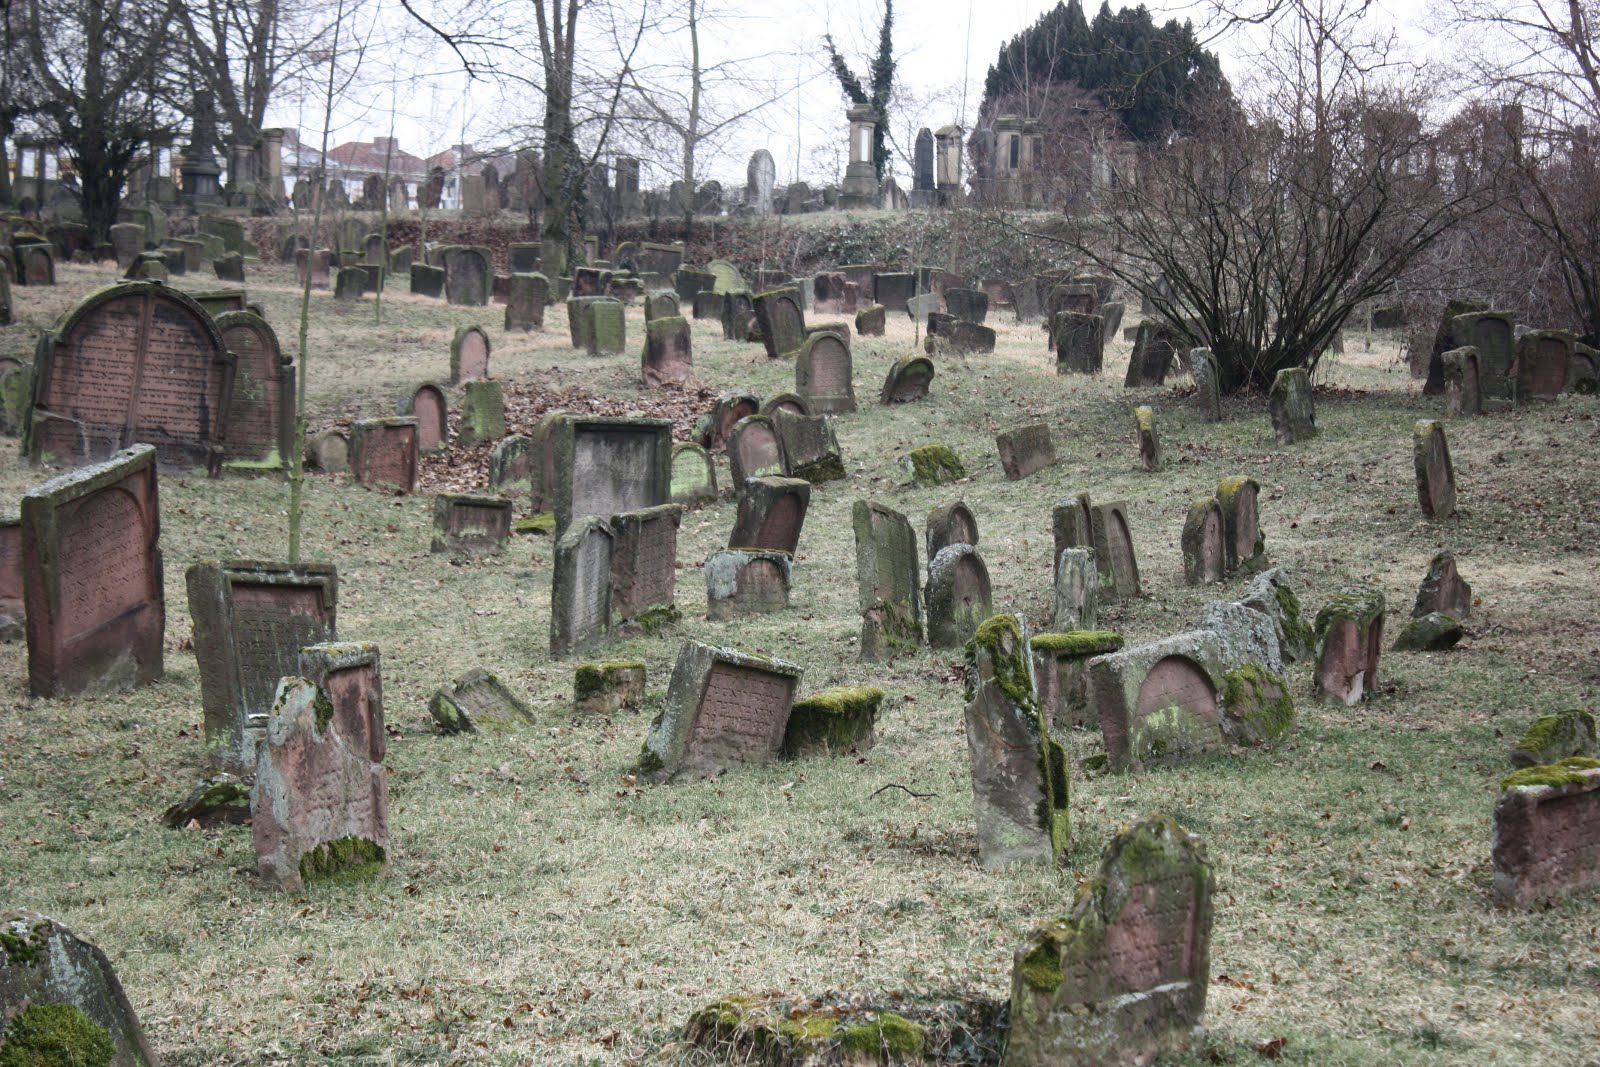 Jewish Cemetery Worms, Germany